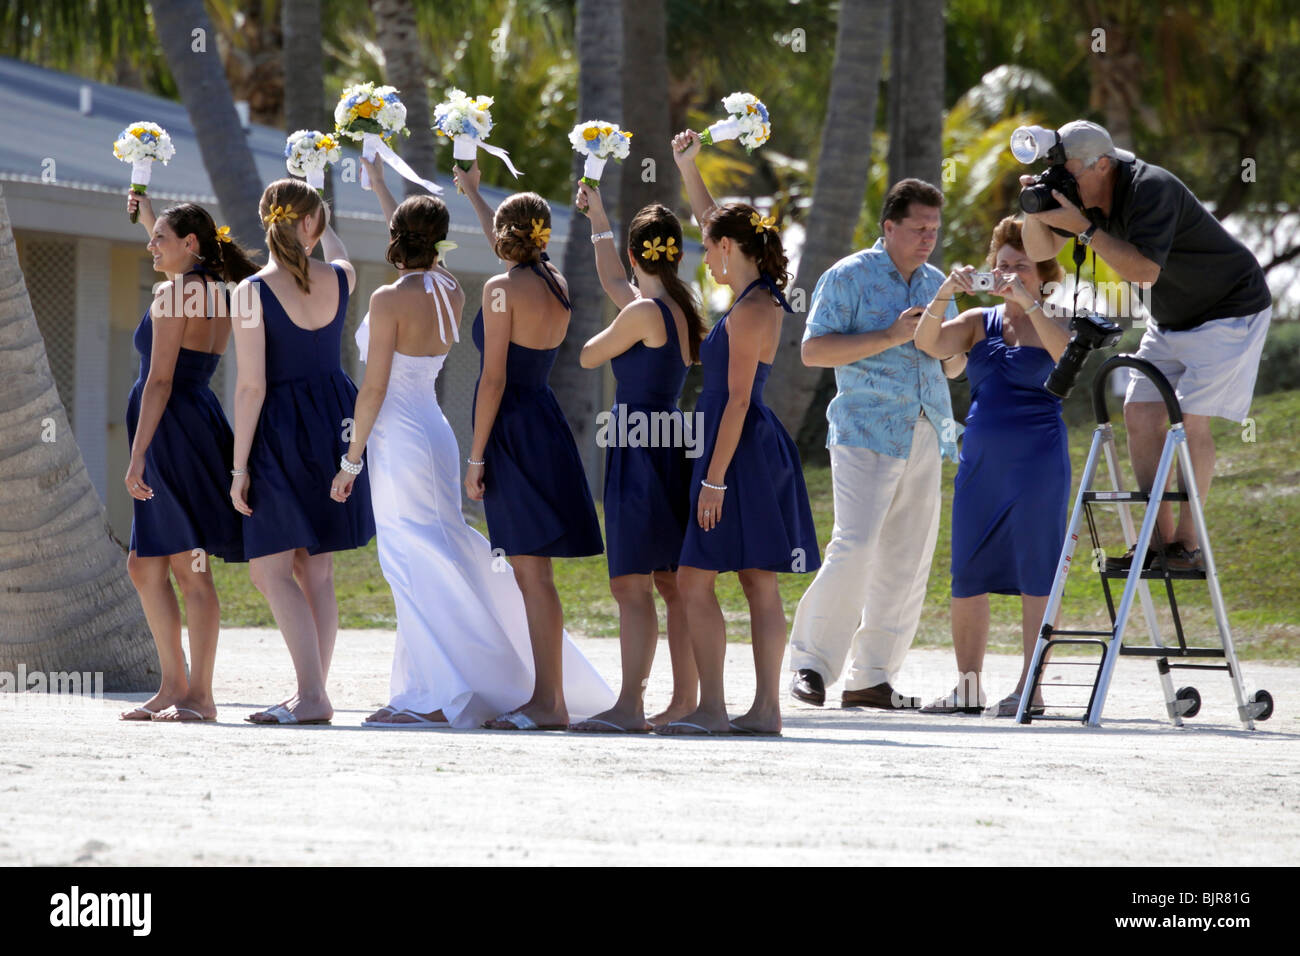 Bride And Bridesmaids Pose For Wedding Photos On The Beach With